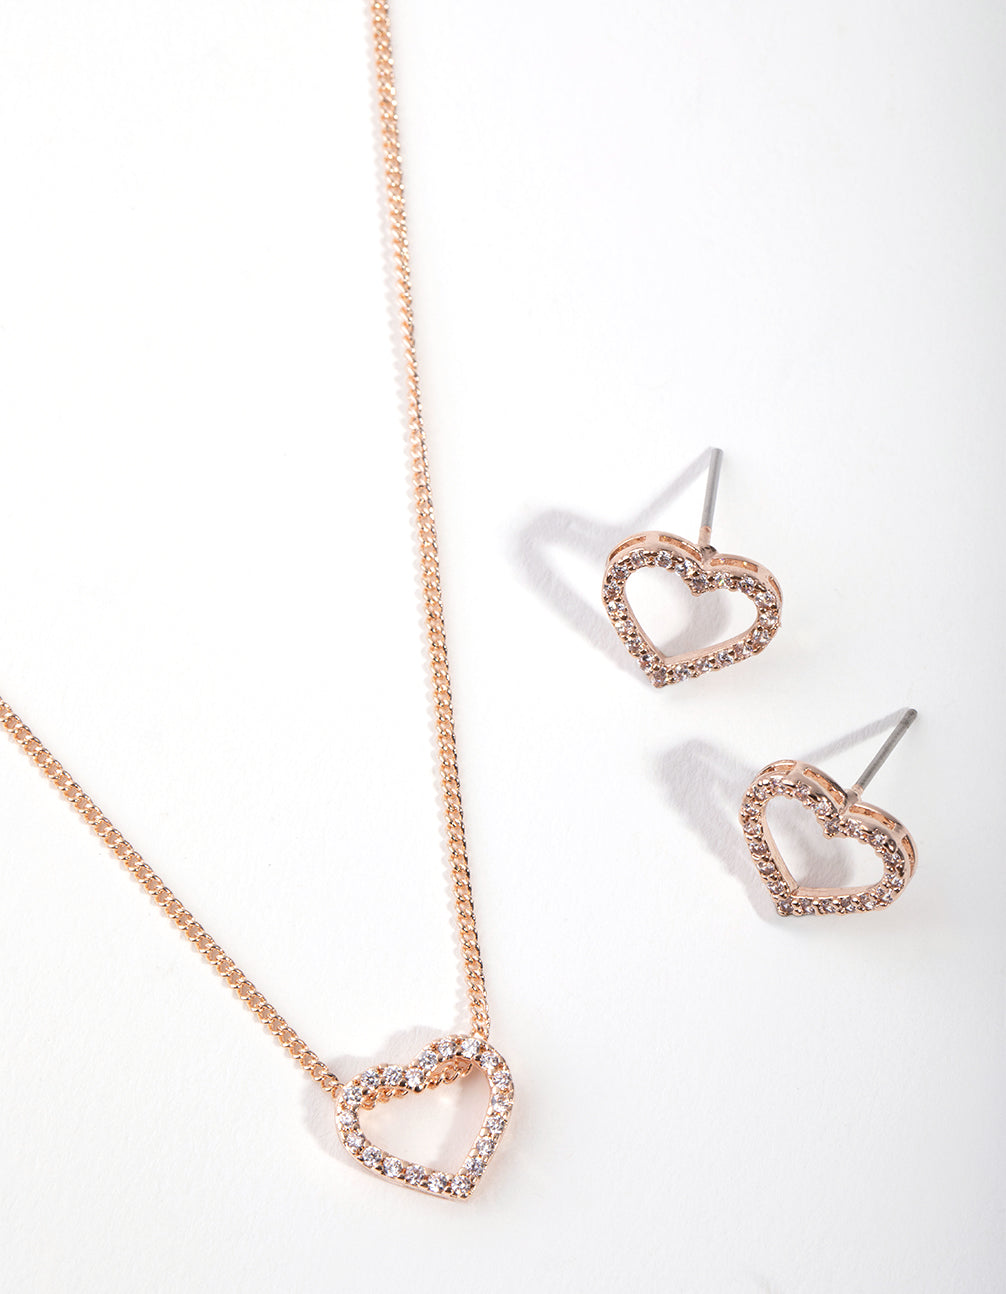 Rose Gold Diamond Simulant Heart Necklace and Earring Set